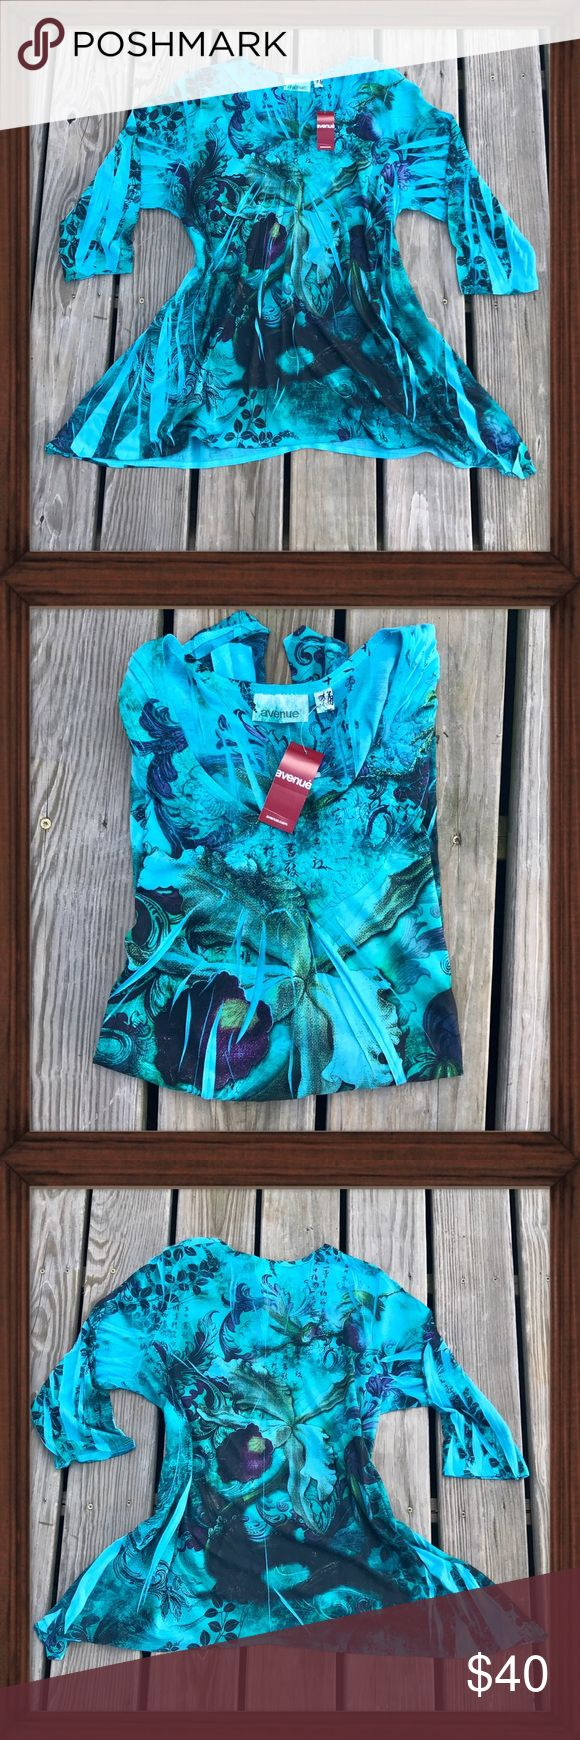 Avenue Teal Pattern Top This teal focused cool toned top features a handkerchief hemline. The scoop neckline is textured. It is in perfect brand new condition. Lightweight, stretchy material and very soft. Avenue Tops